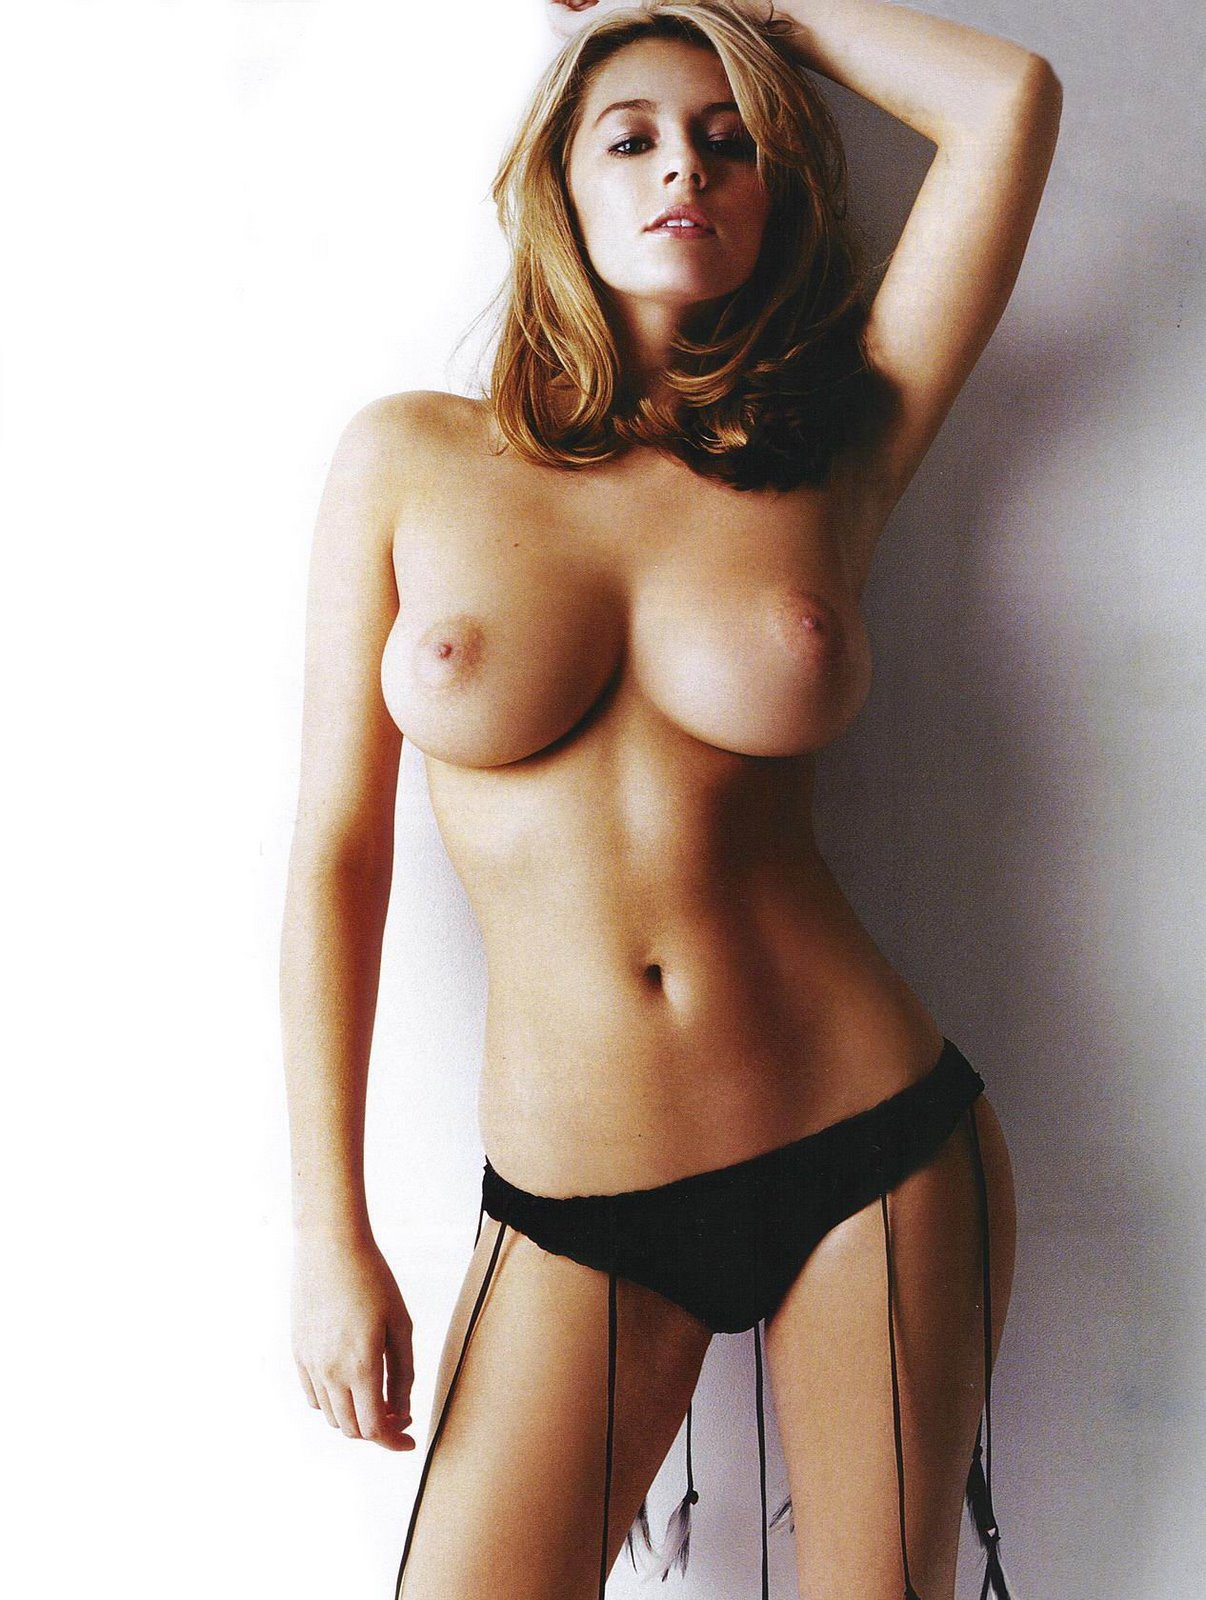 Topless  99Gorgeousgirlss Blog  Page 3-2754